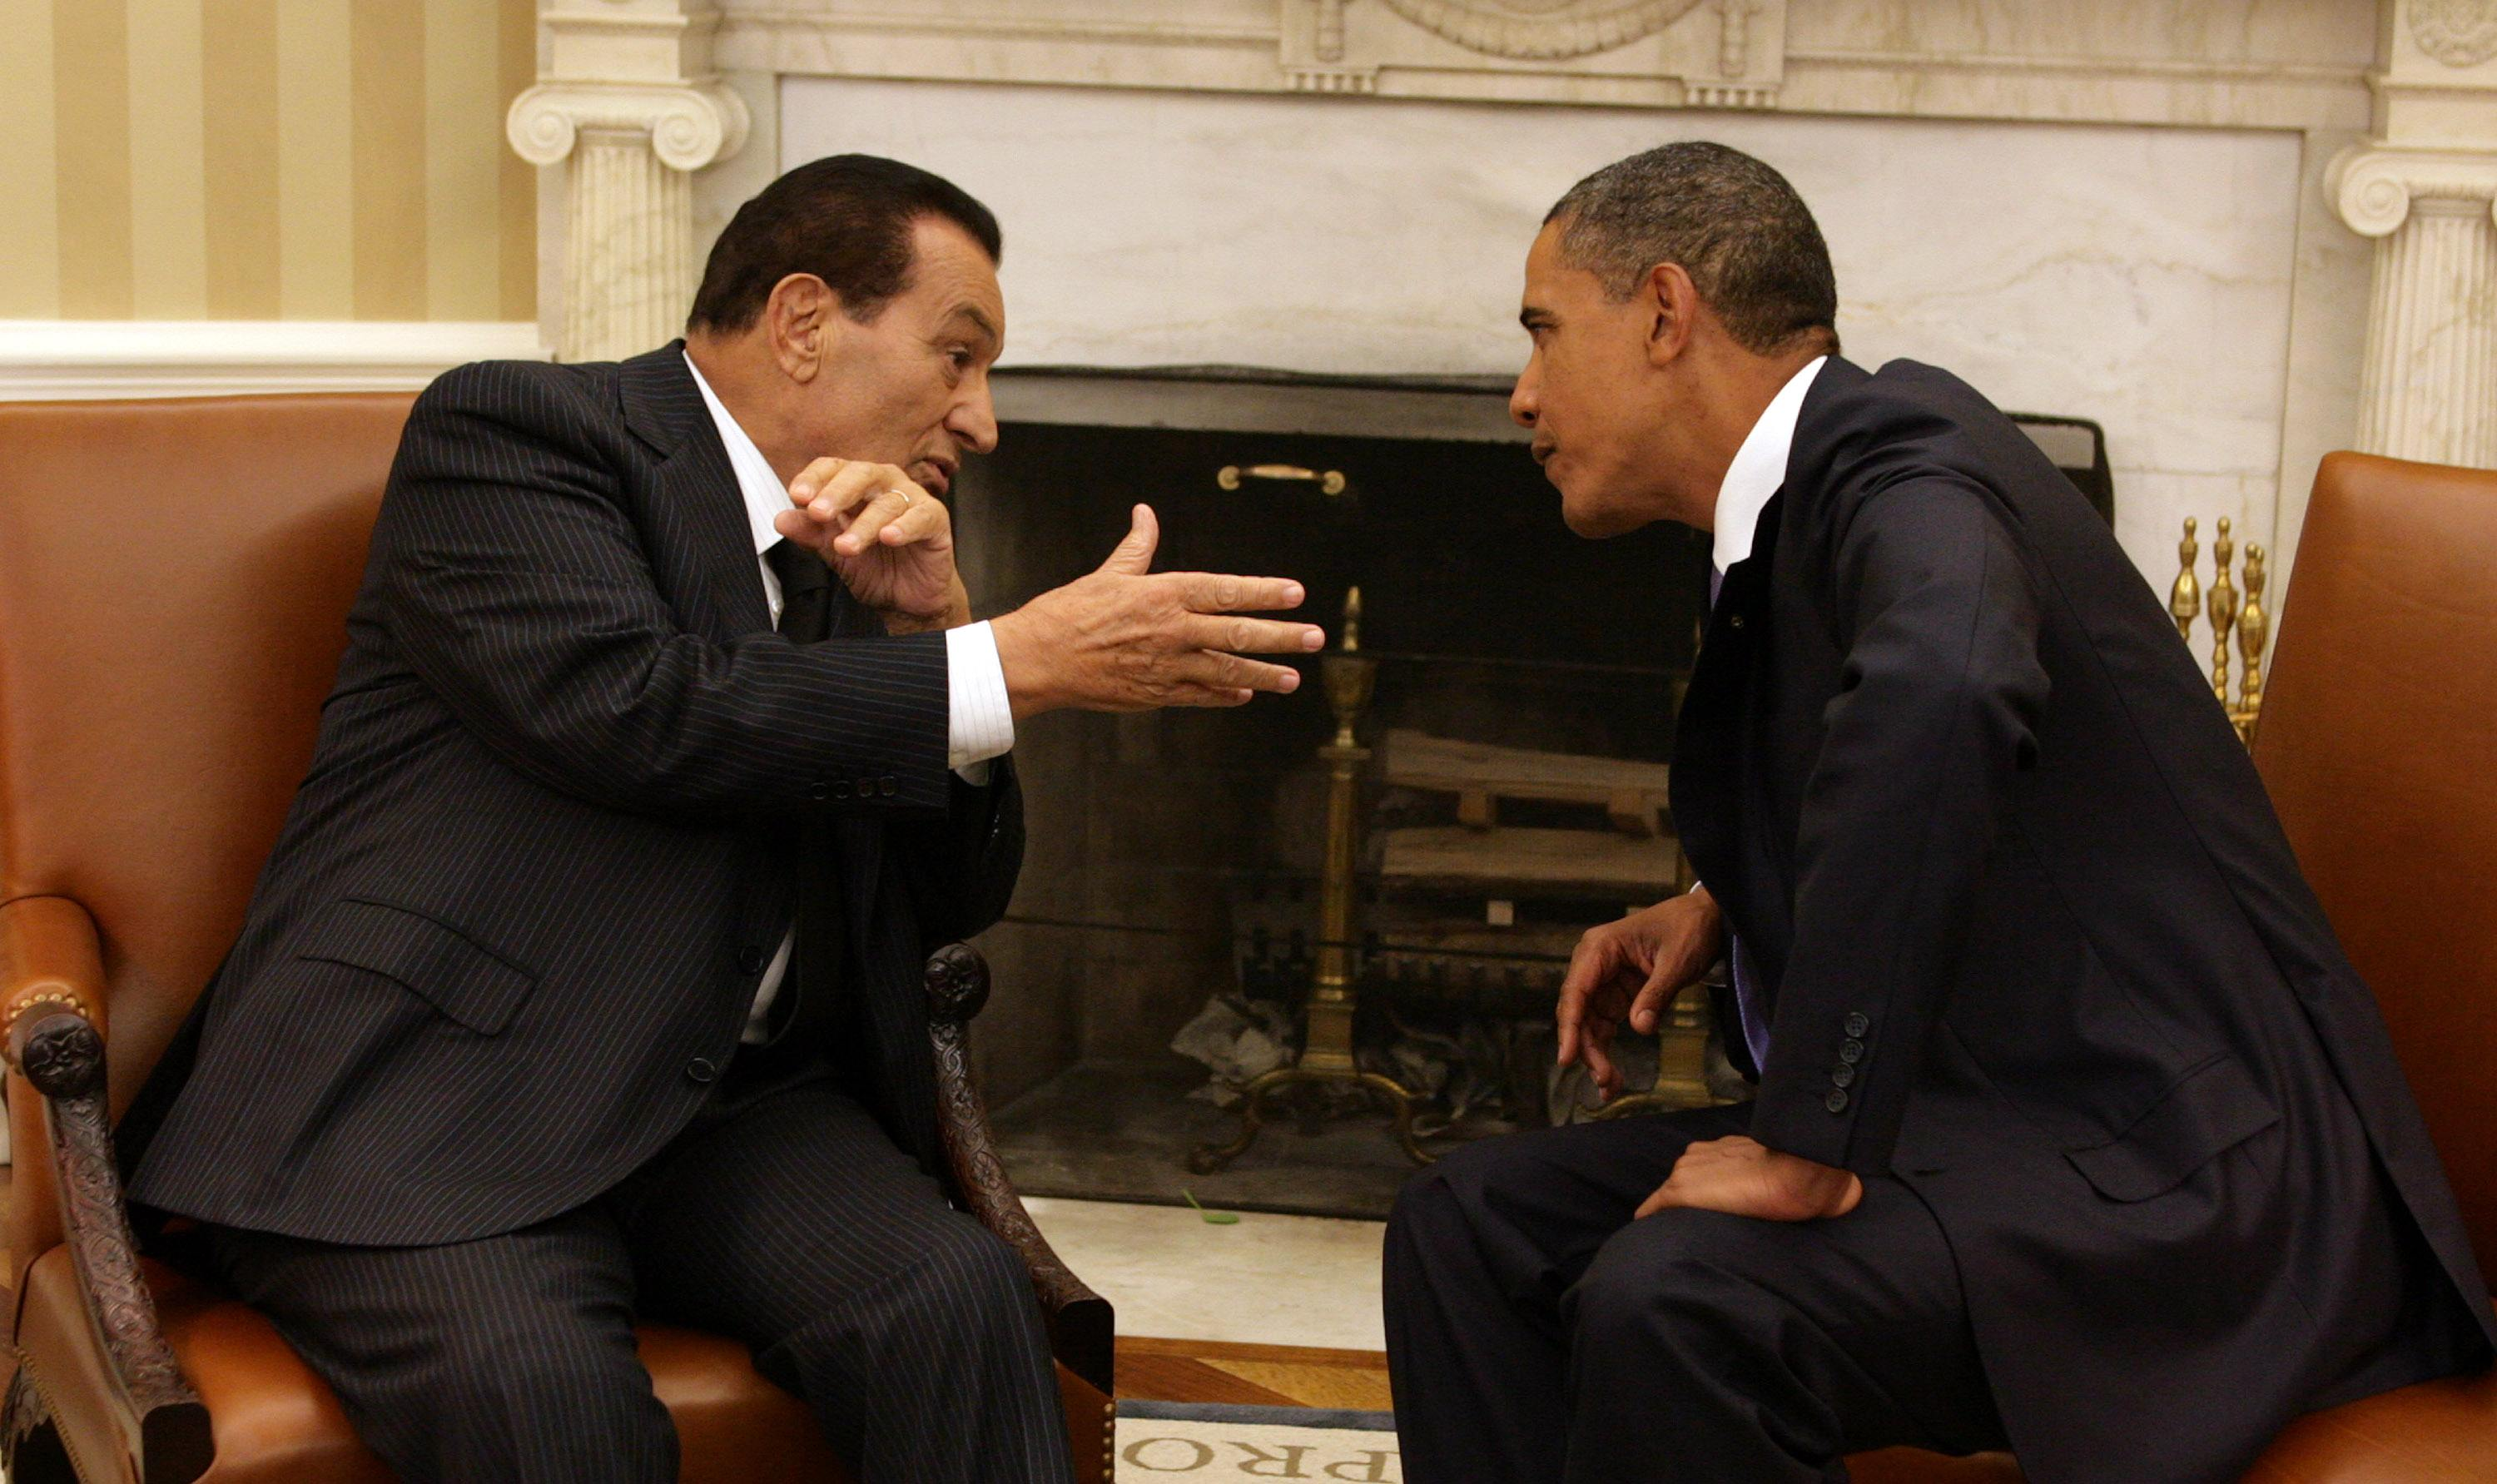 President Barack Obama (R) speaks with Egyptian President Hosni Mubarak